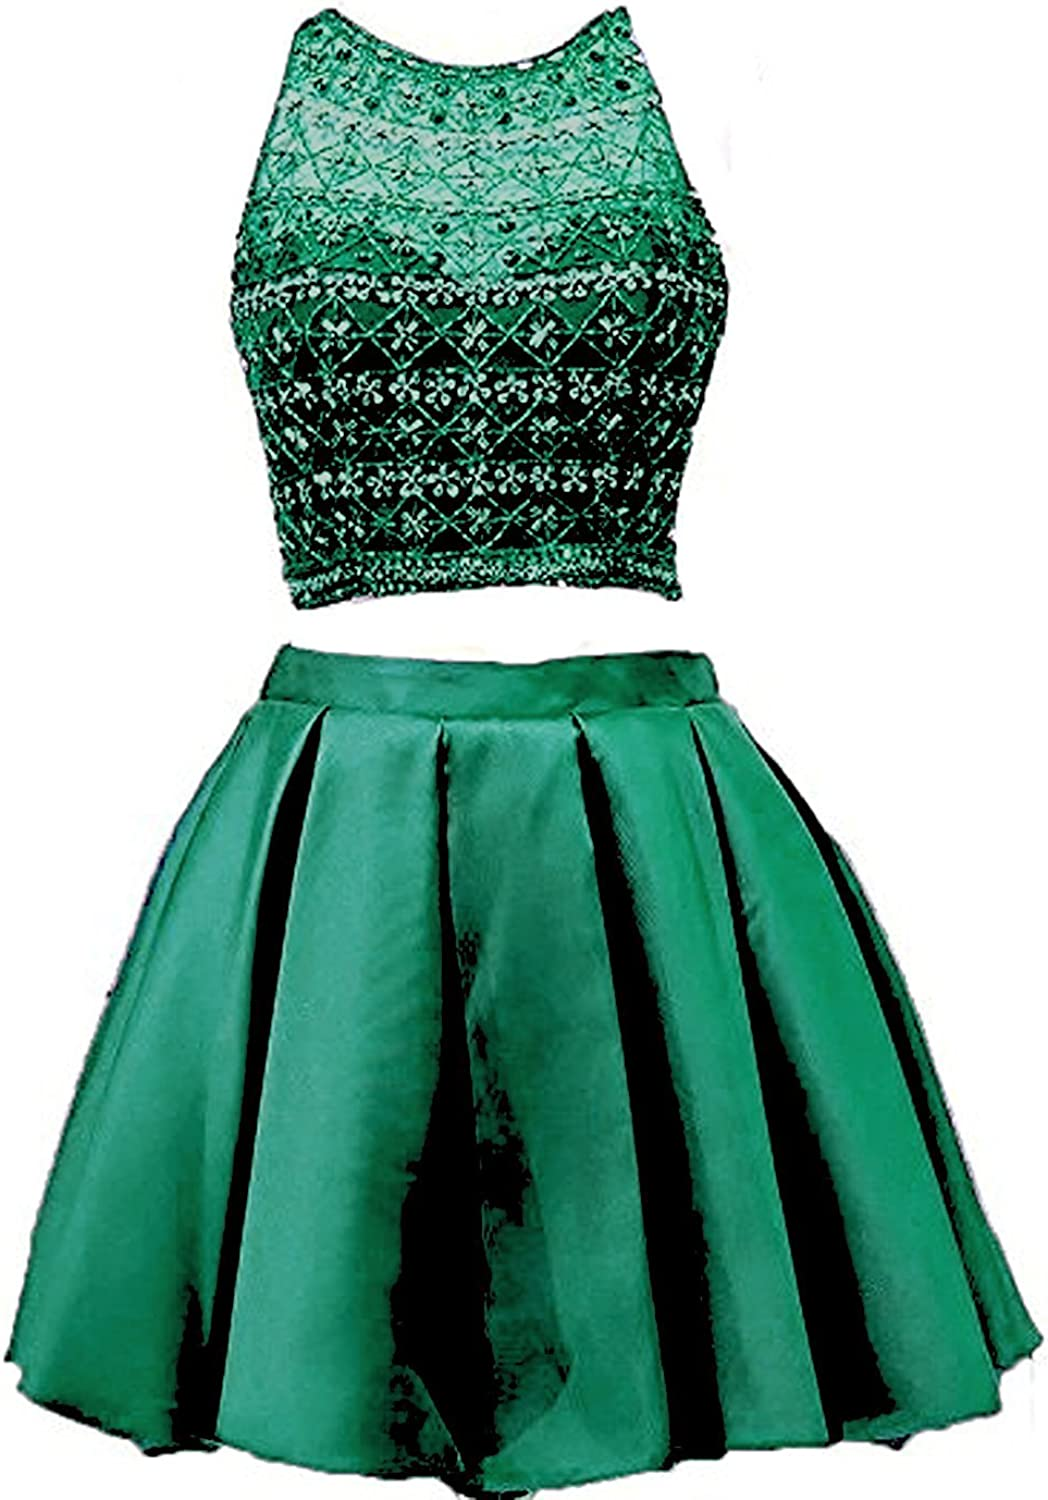 Hjtrust Women's Crystals Two Piece Homecoming Dresses Short Prom Gowns 2017 H013